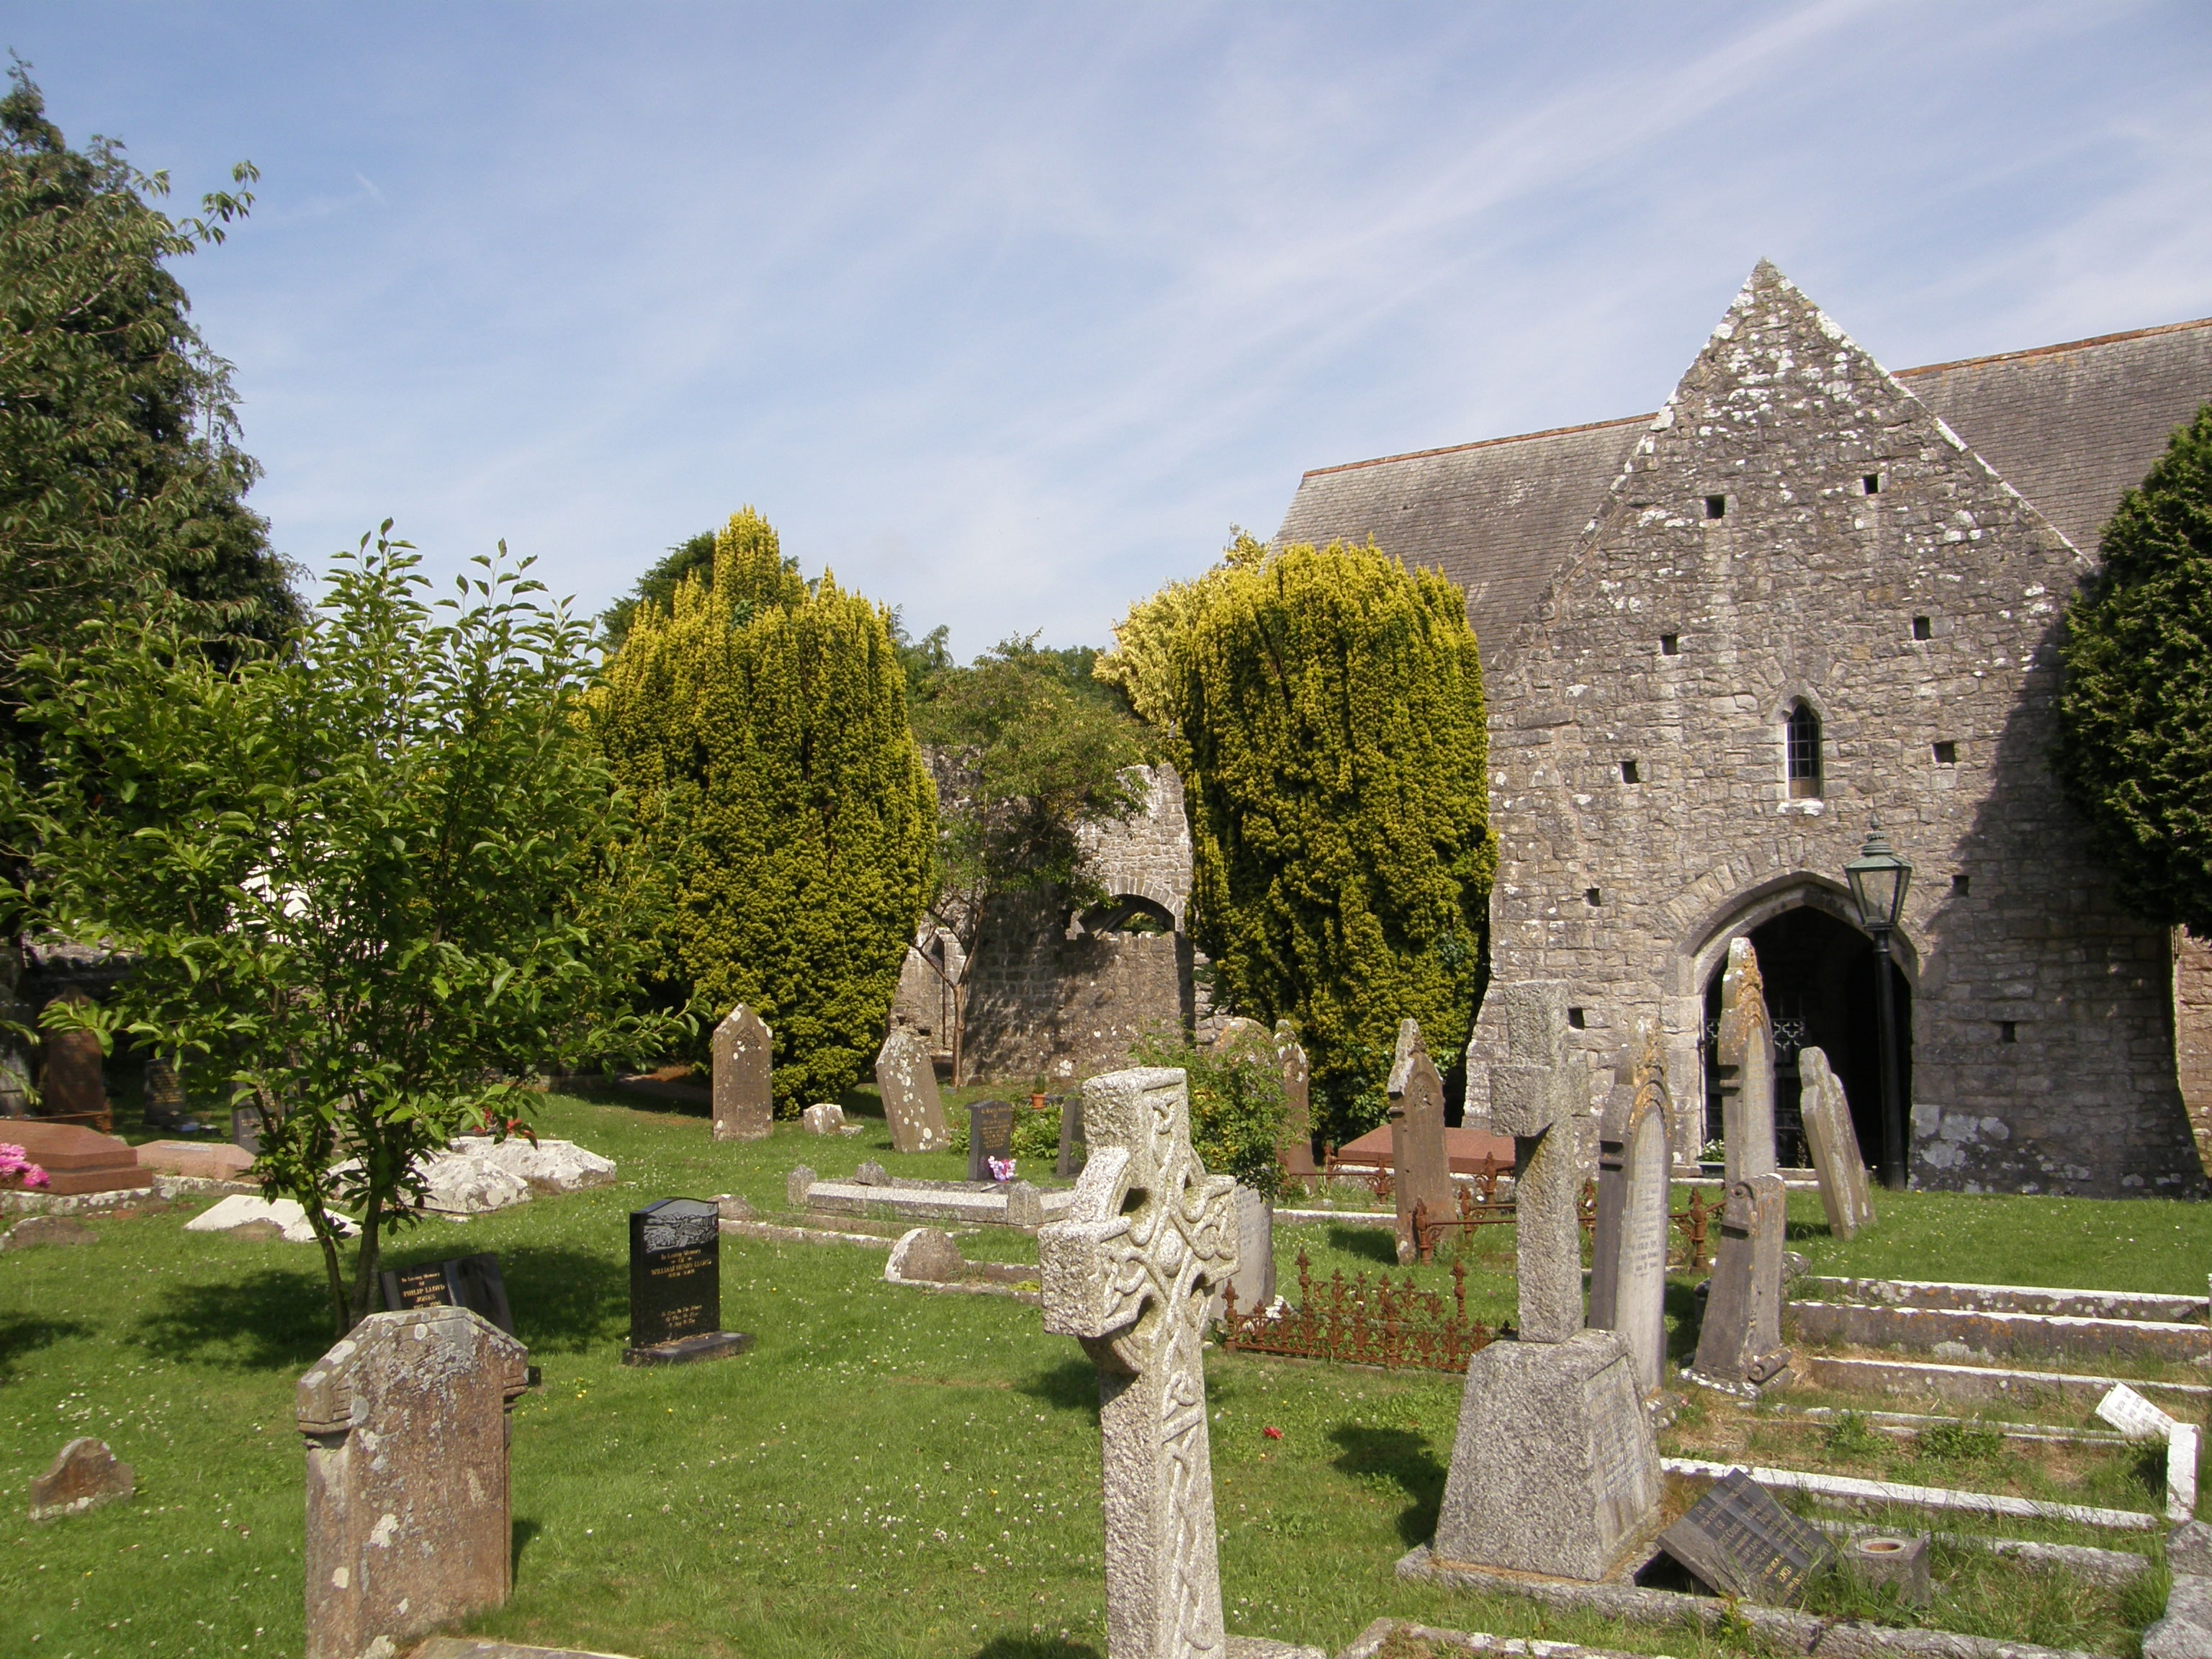 St. Illtuds Church, Llantwit Major, from church yard and showing ruined monastic chapel at west end